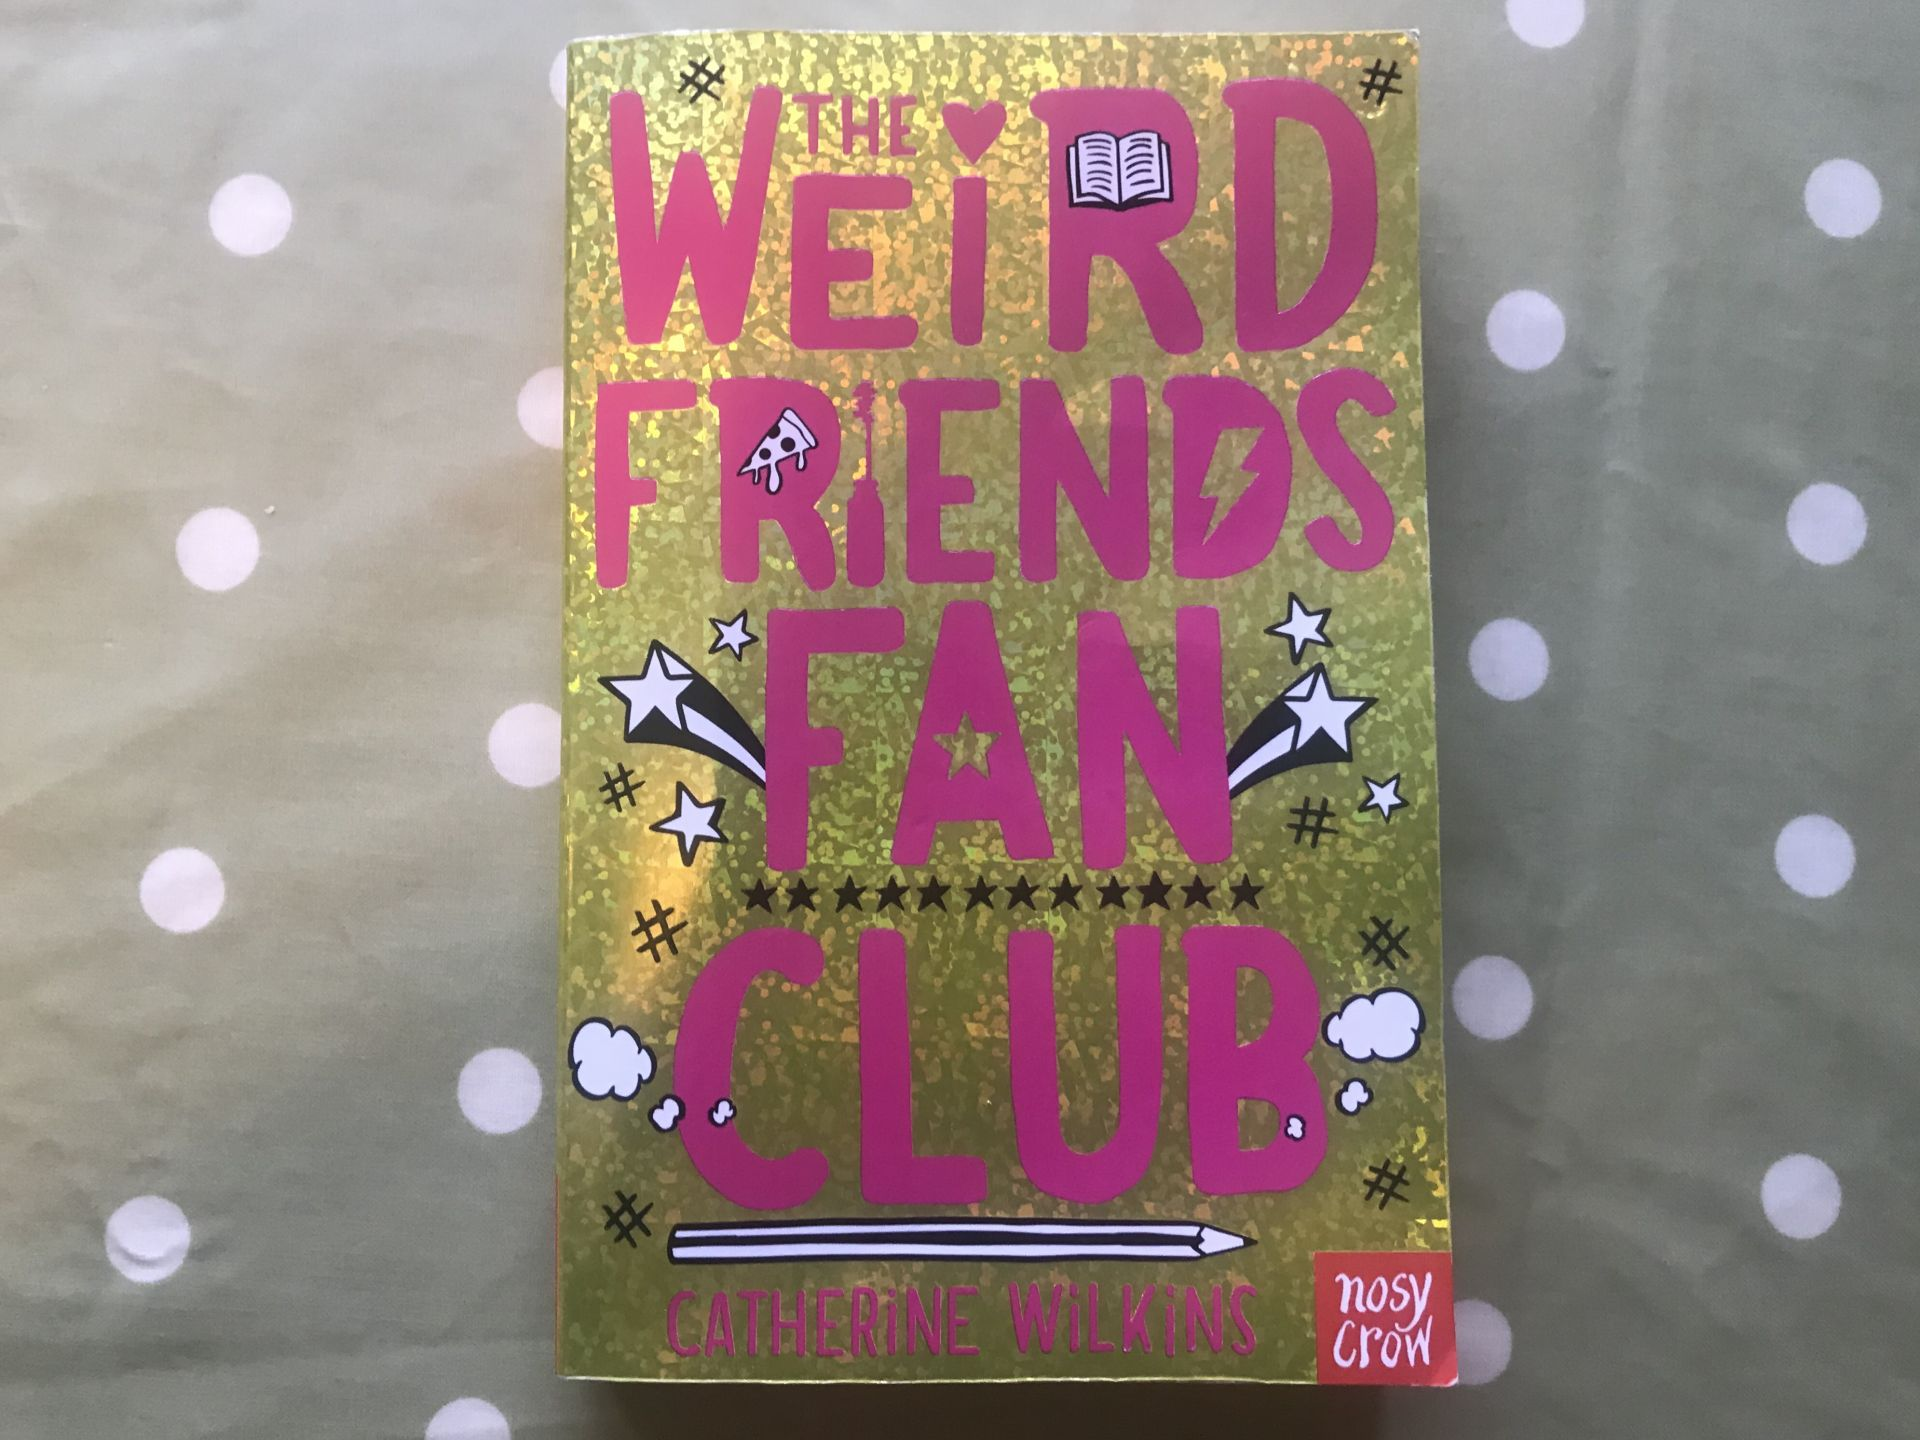 Weird friends fan club paperback